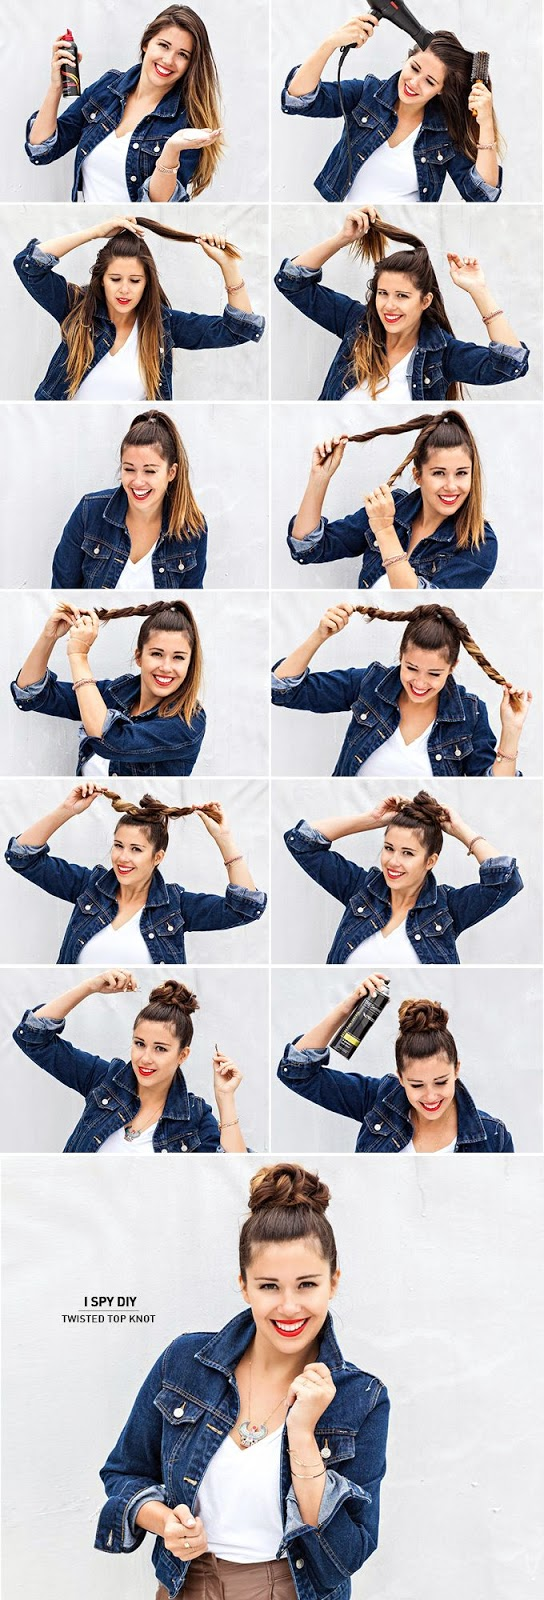 new twisted top hair style tutorial